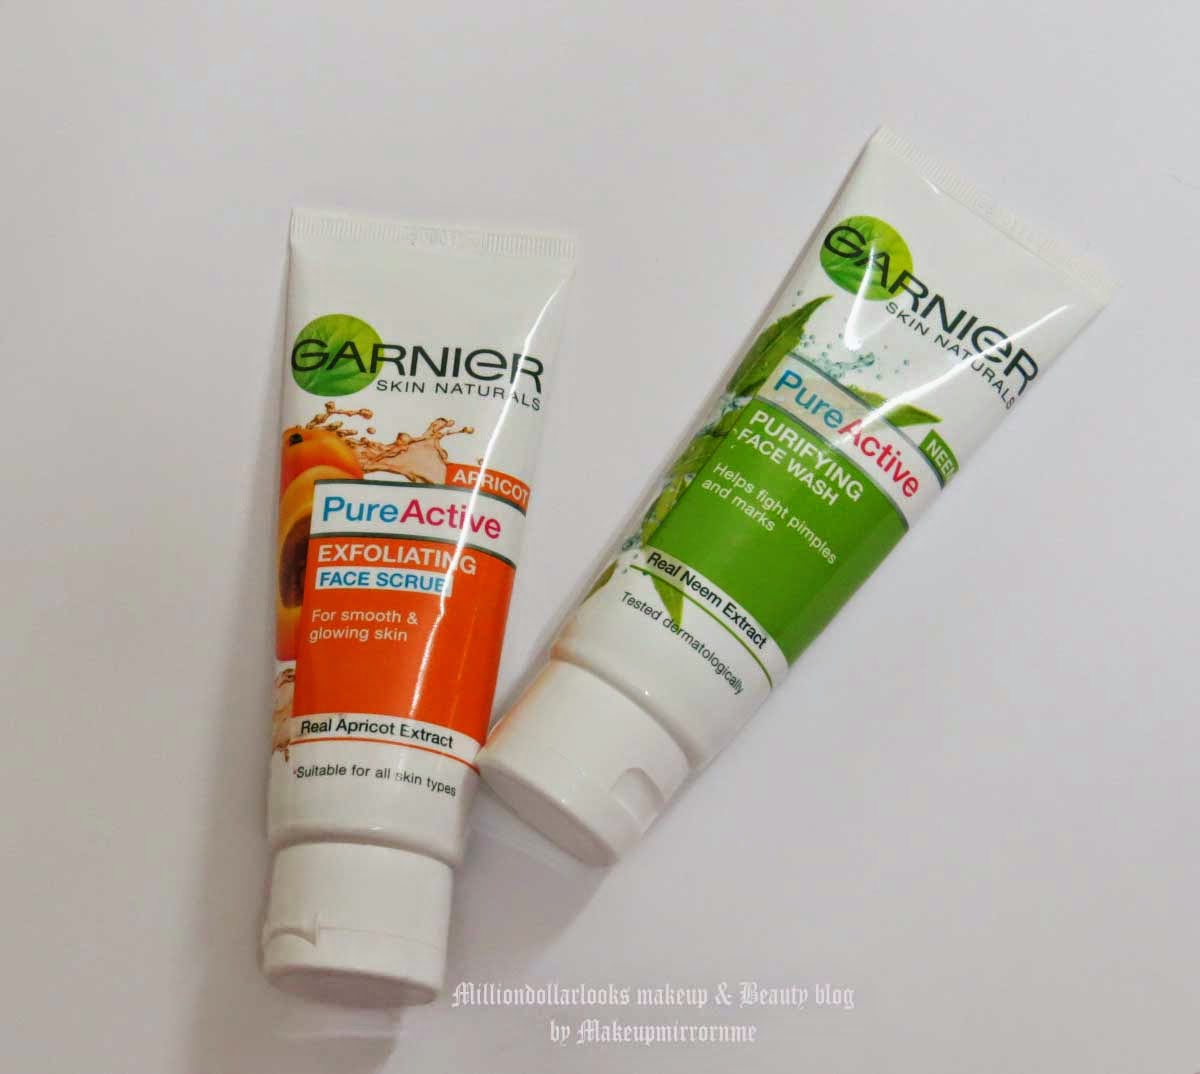 Garnier Skin Naturals Pure Active Summer Cleansing 'Twice as Nice' Combo Pack Review & Pictures, Indian makeup and beauty blog, Indian makeup blogger, Indian beauty blog, Best affordable face wash for dry skin type, Best affordable face scrub for all skin type, Garnier Pure active review, Garnier pure active twice as nice combo review, neem face wash review, Garnier apricot face scrub review